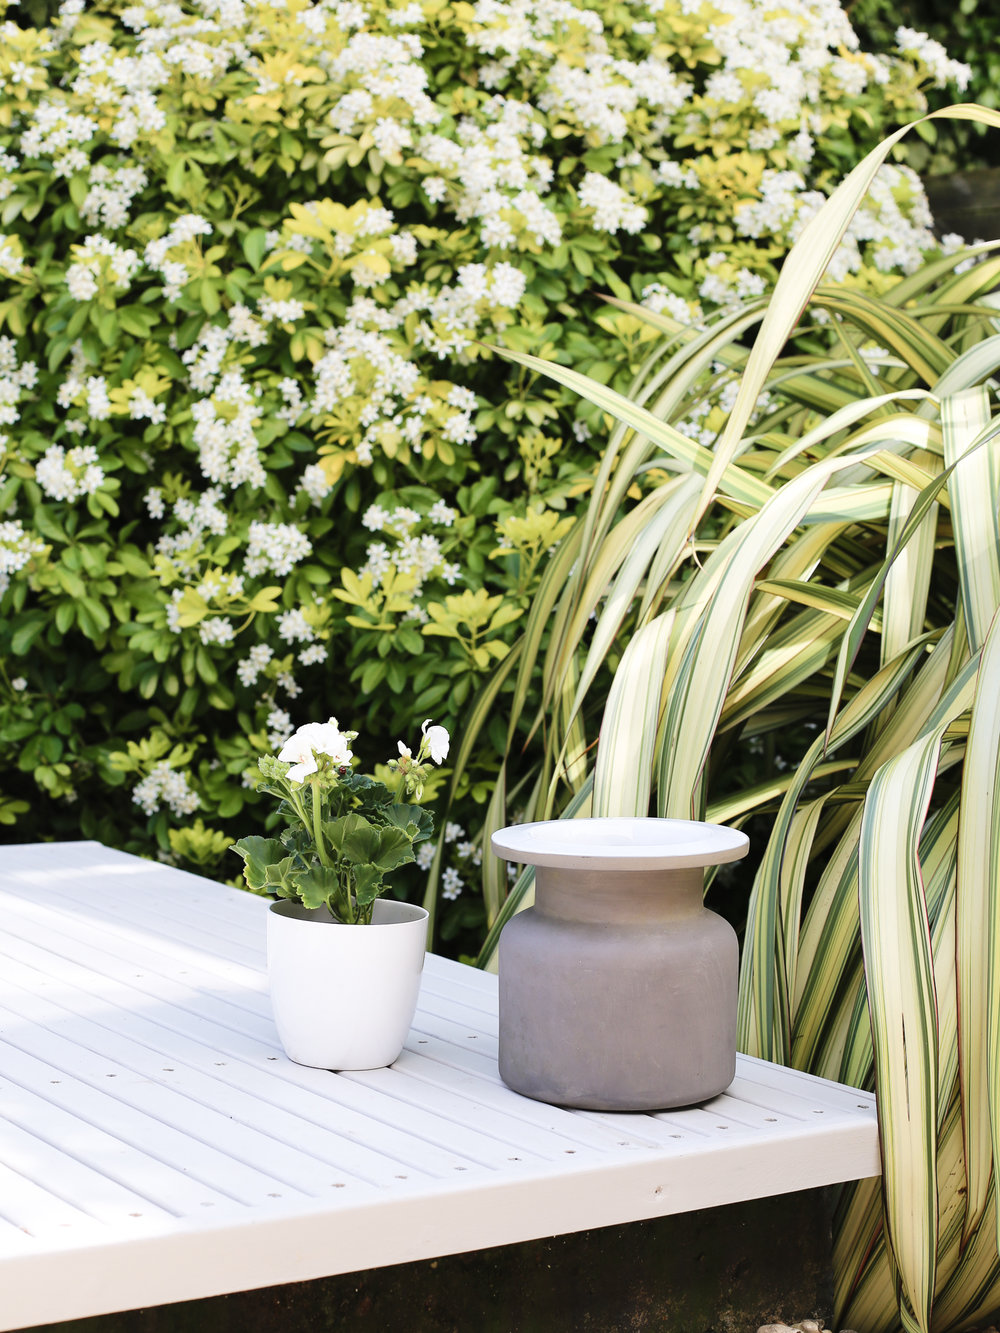 Garden planters on decking | Design Hunter